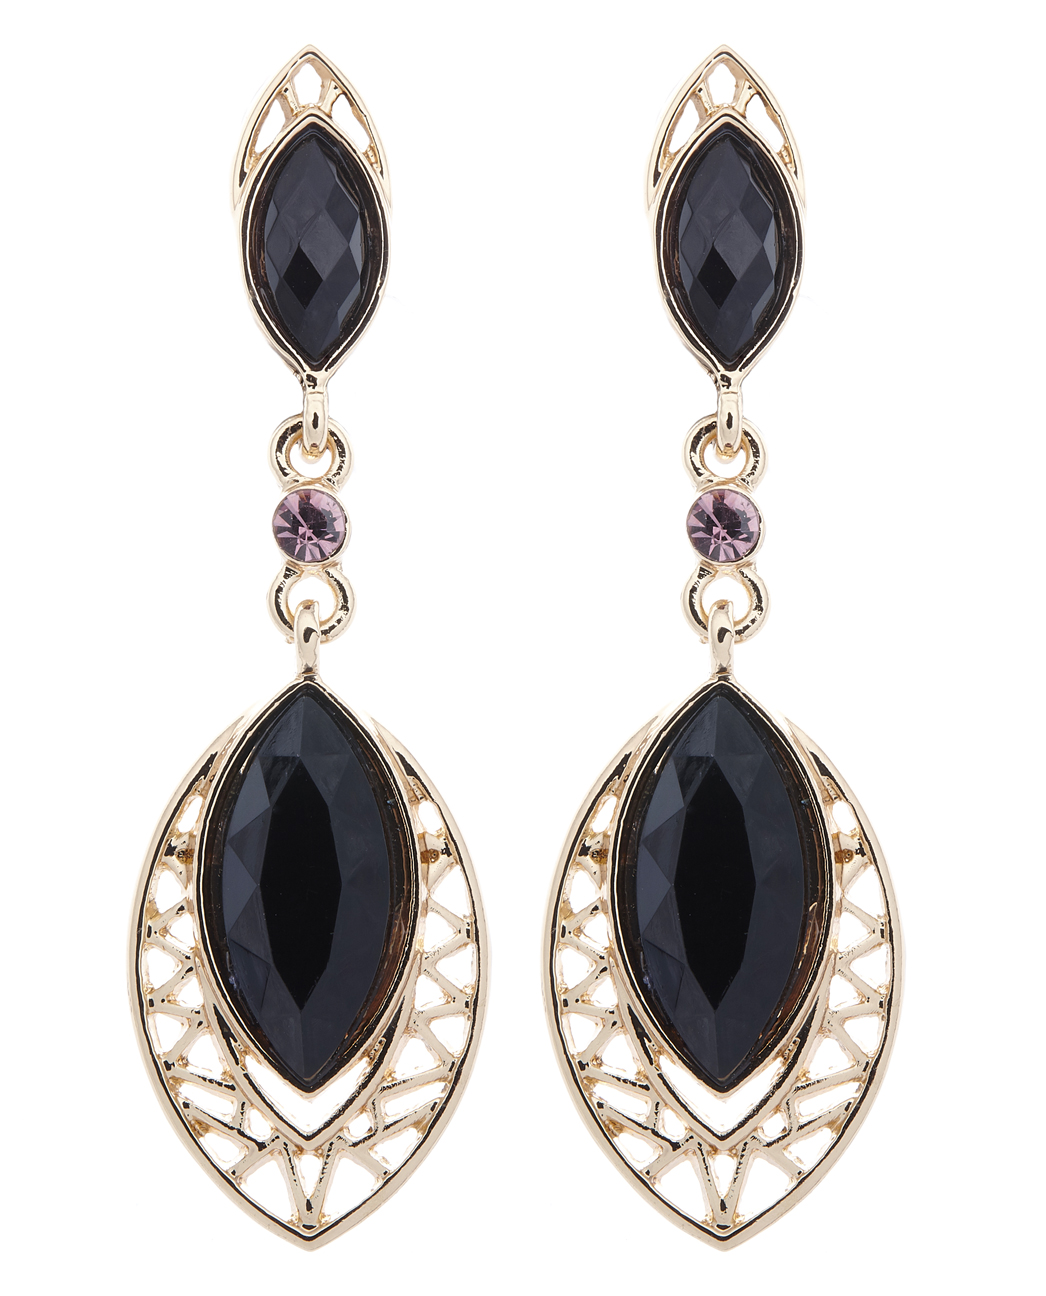 Clip on earrings - Velma - gold drop earring with black stones